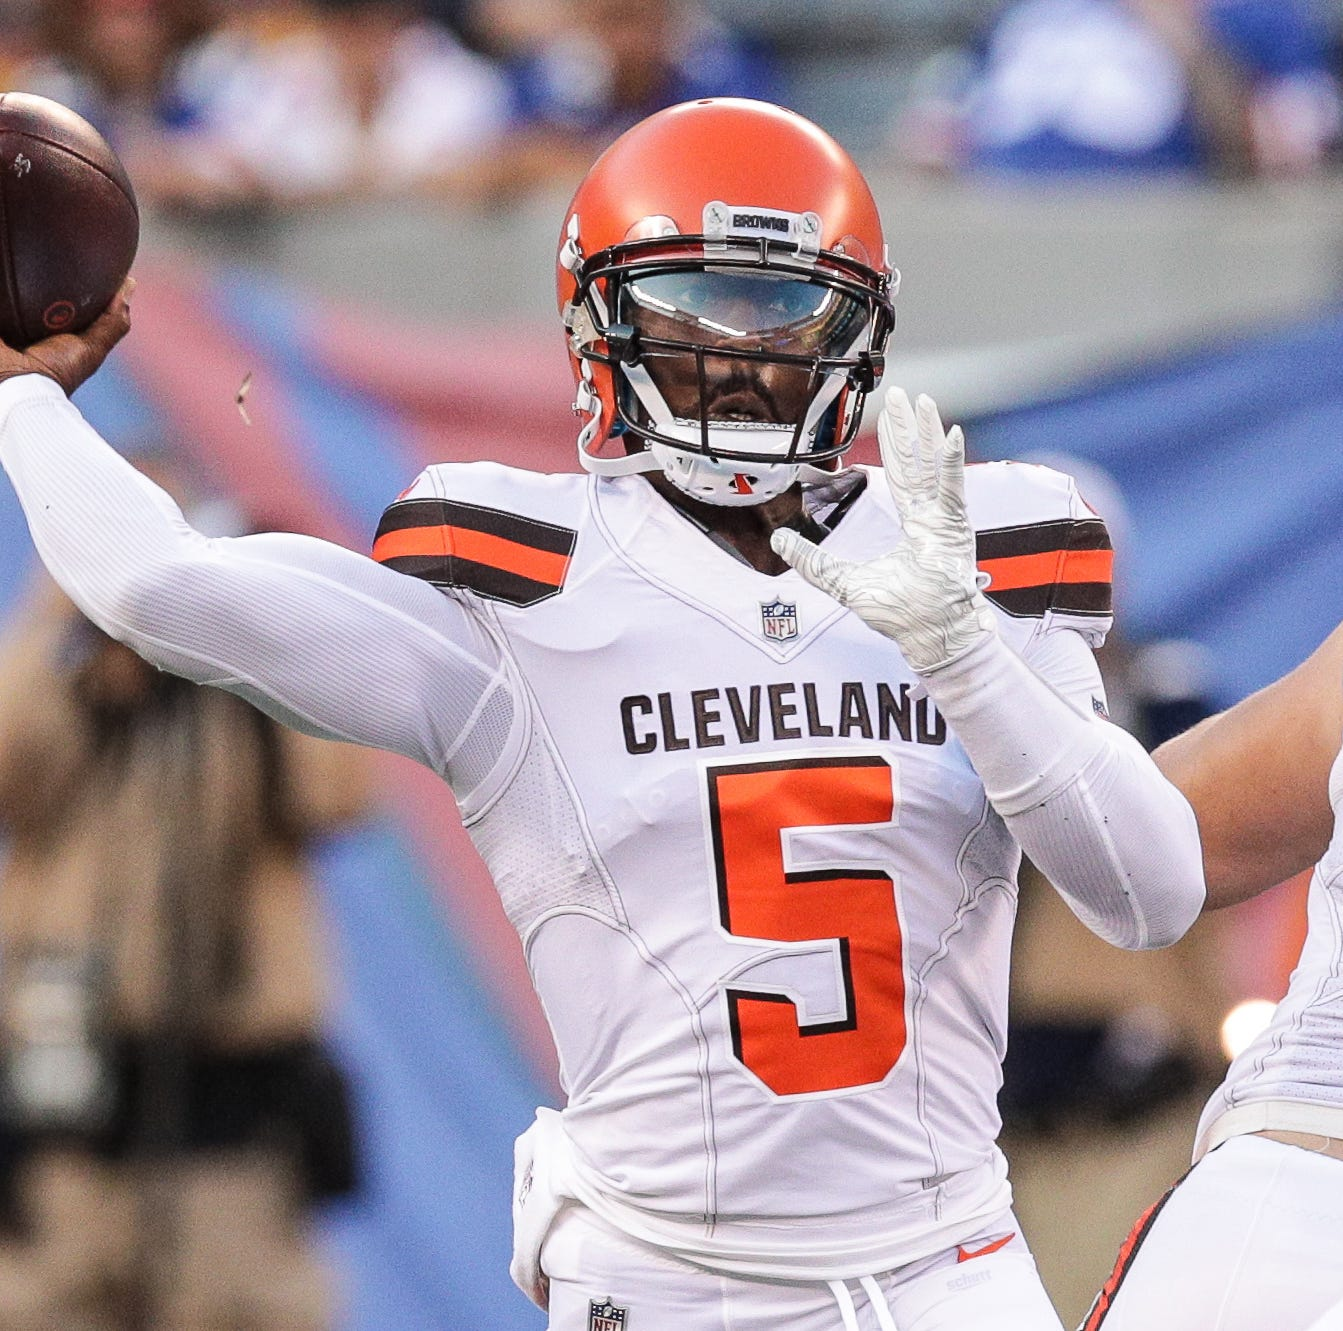 Bills-Browns: Five things to watch in Friday's preseason game